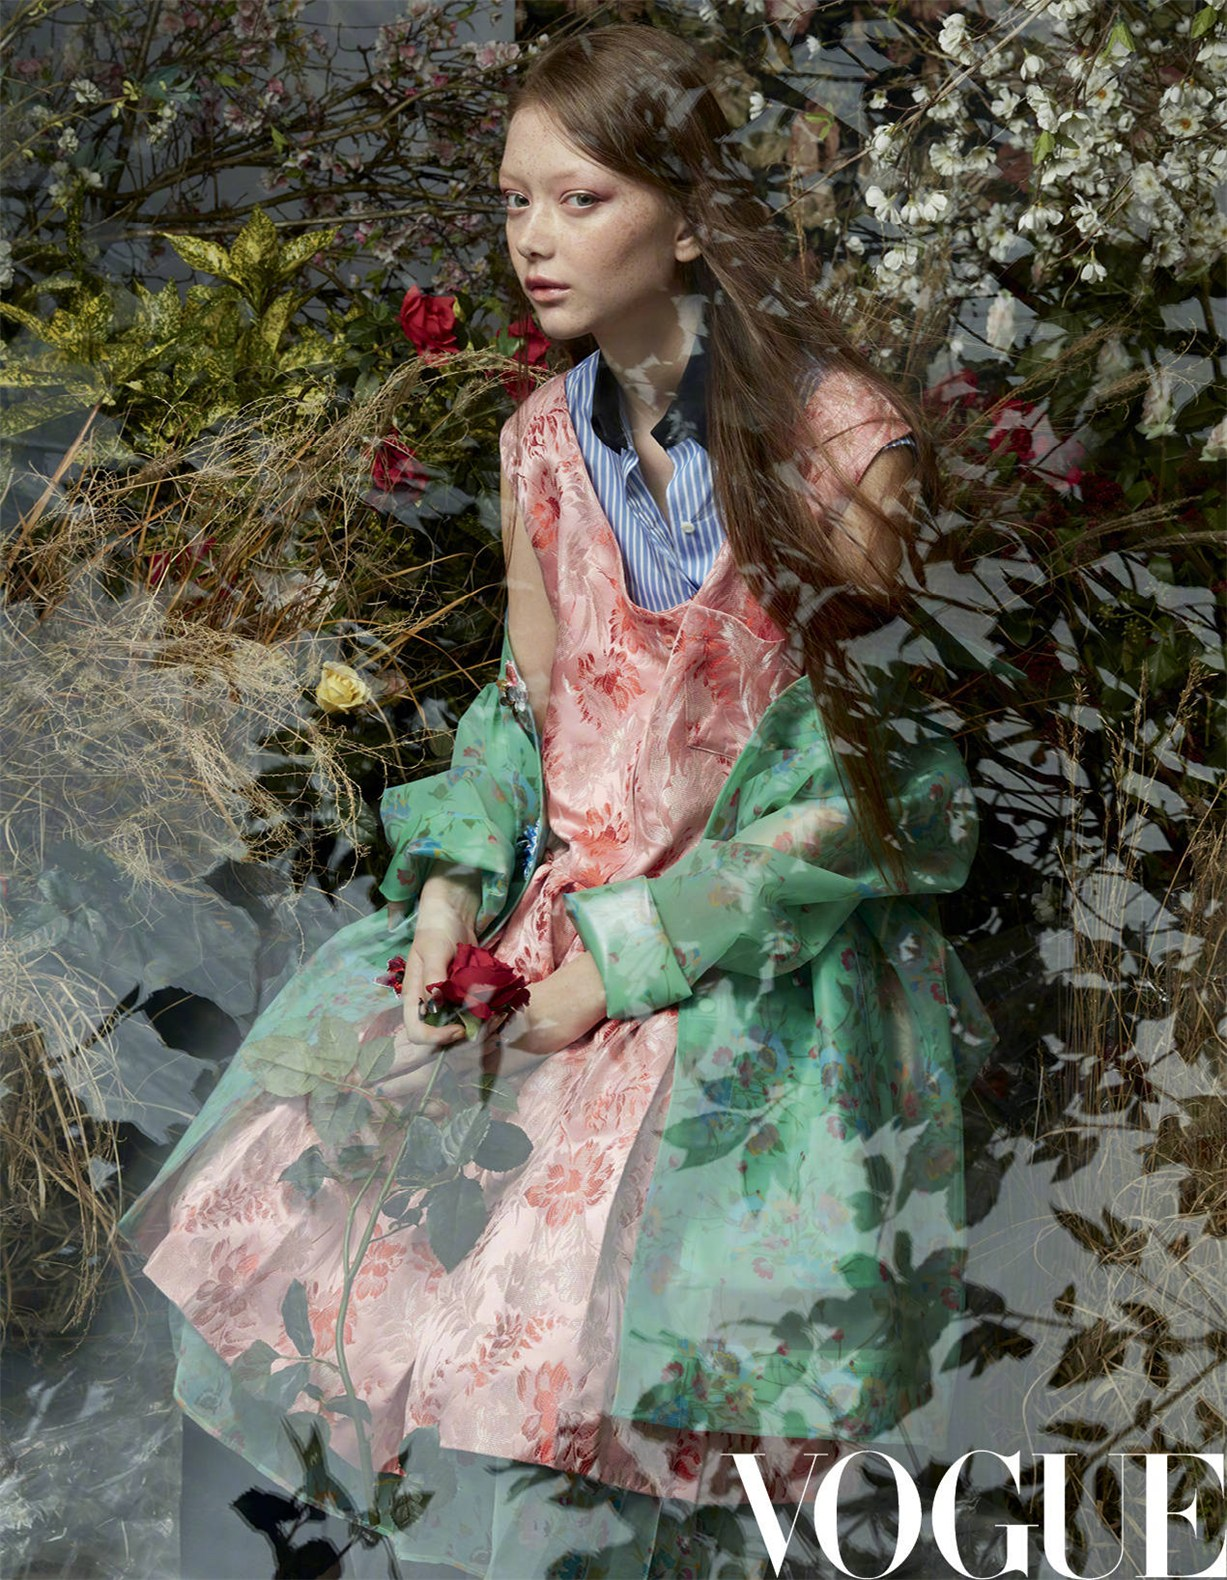 Sara Grace Wallerstedt by Solve Sundsbo - Vogue China may 2018